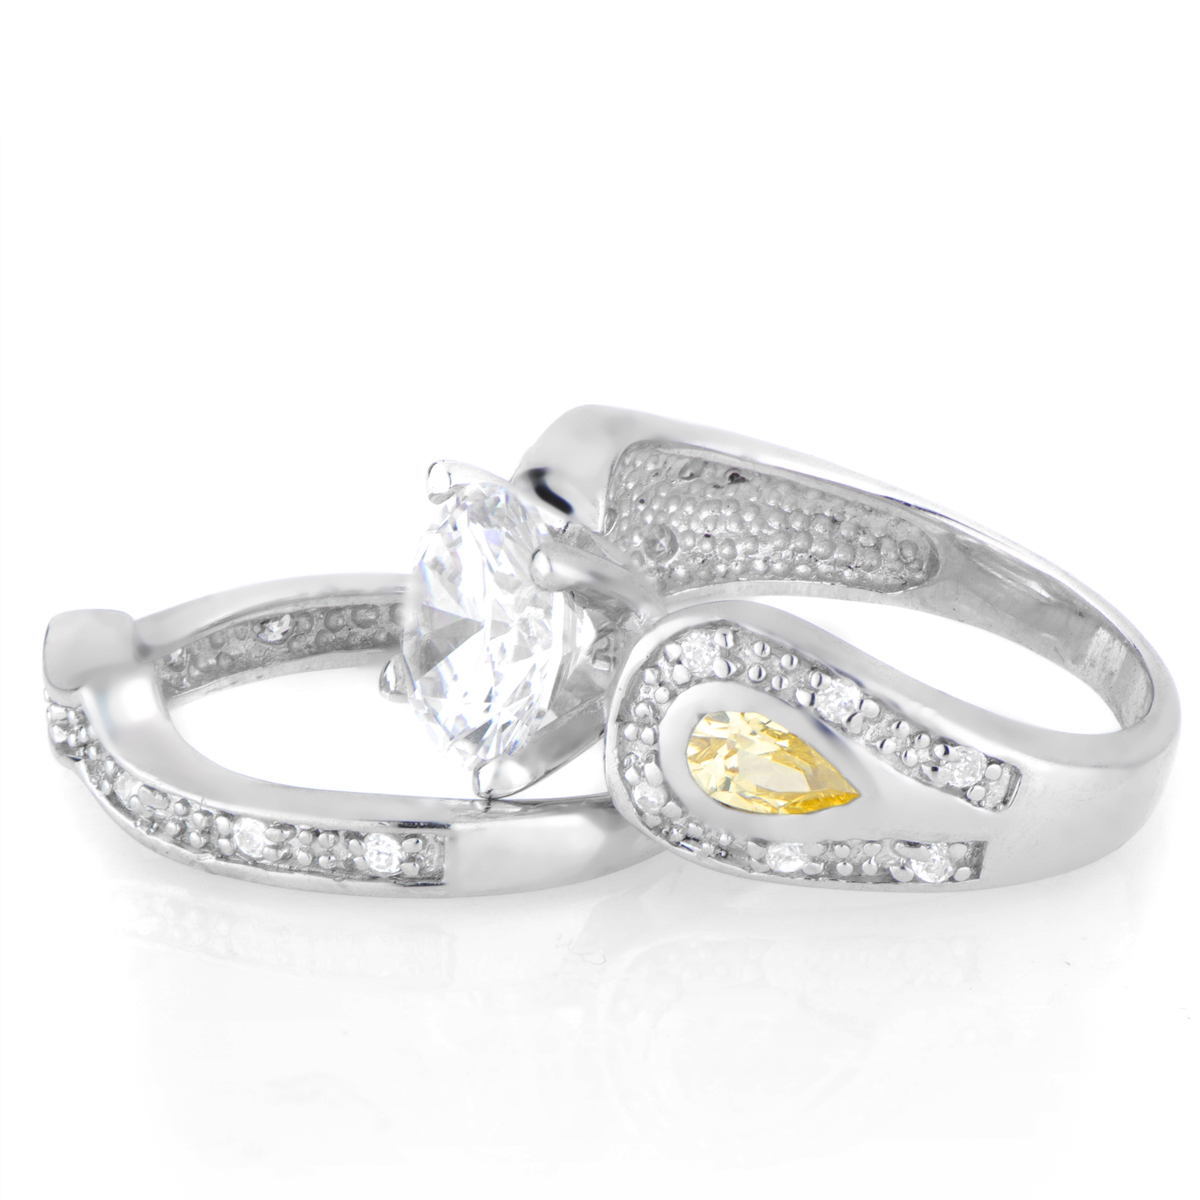 Best Of Modest Engagement Rings. White Sapphire Rings. Four Rings. Vicky Rings. Cushion Cut Engagement Engagement Rings. Binder Rings. Queen Mary's Engagement Rings. Malabar Gold Rings. Wrap Wedding Rings